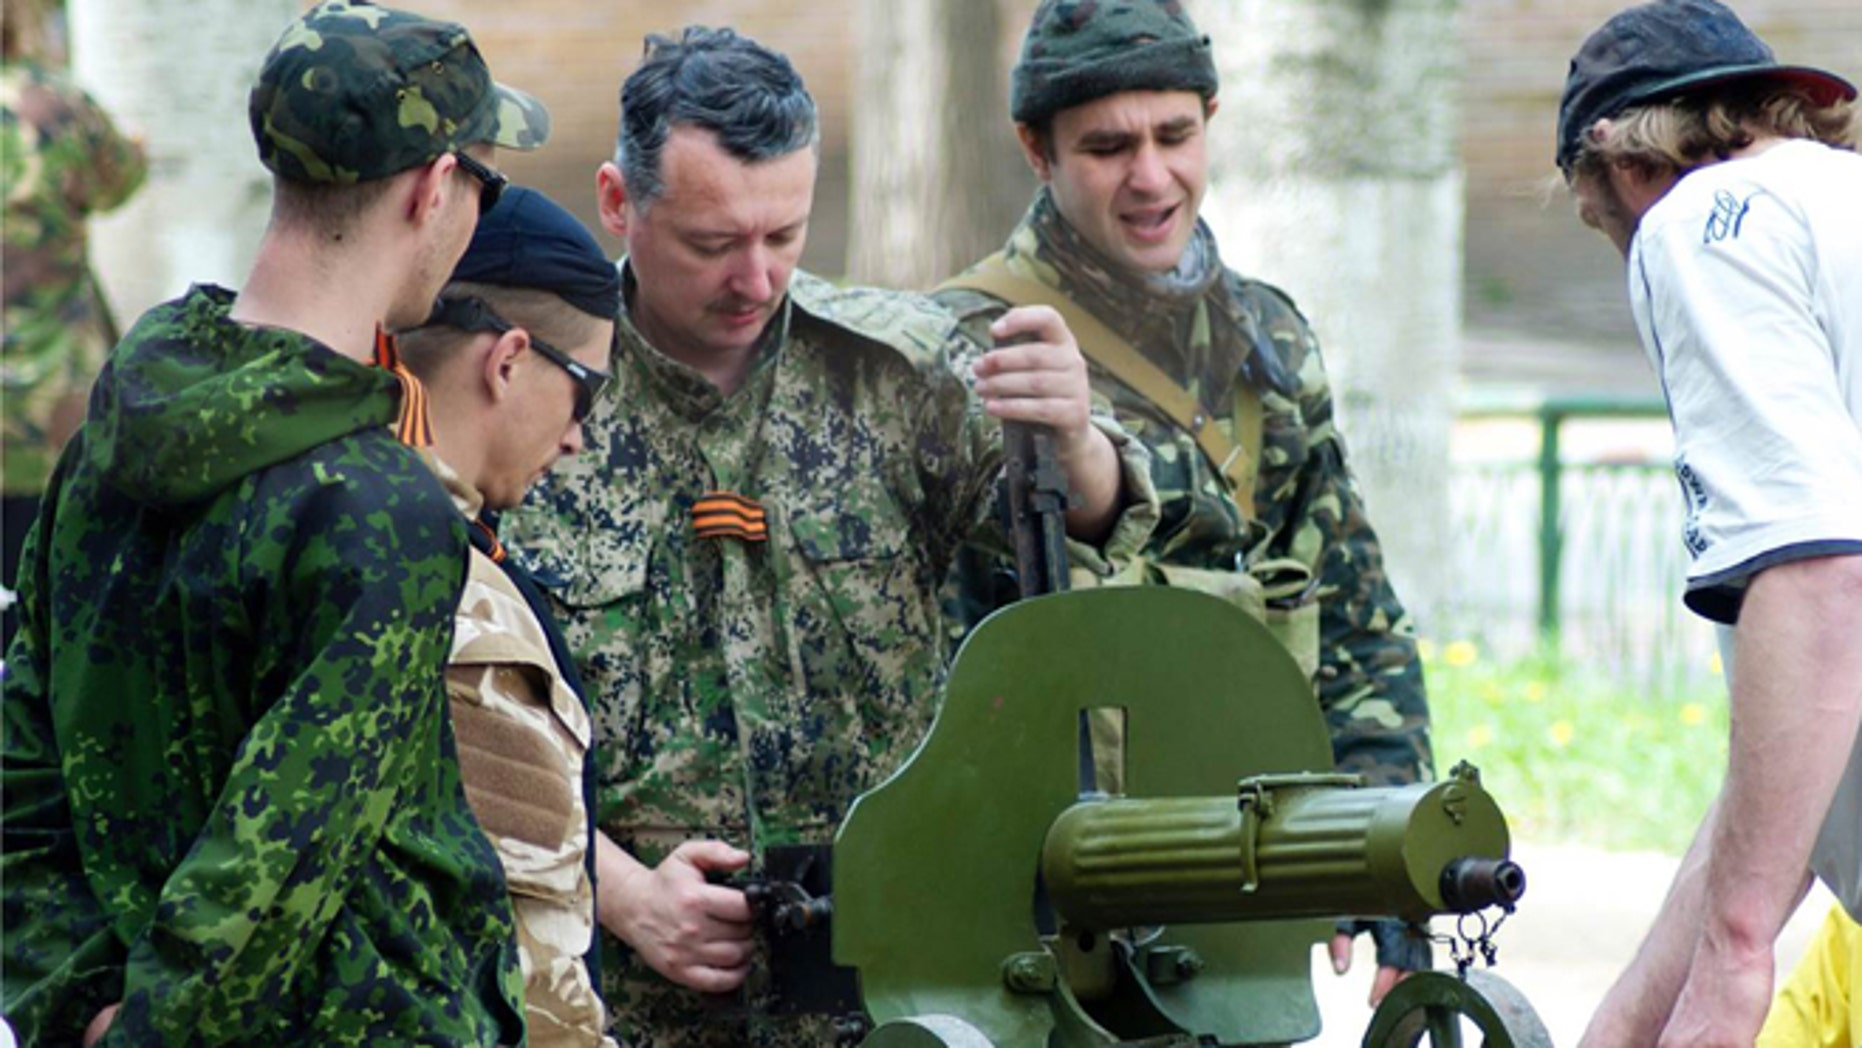 """April 23, 2014: Igor Strelkov, the defense minister of the self-proclaimed """"Donetsk People's Republic,"""" inspects a World War I-era machine gun looted from a local museum."""